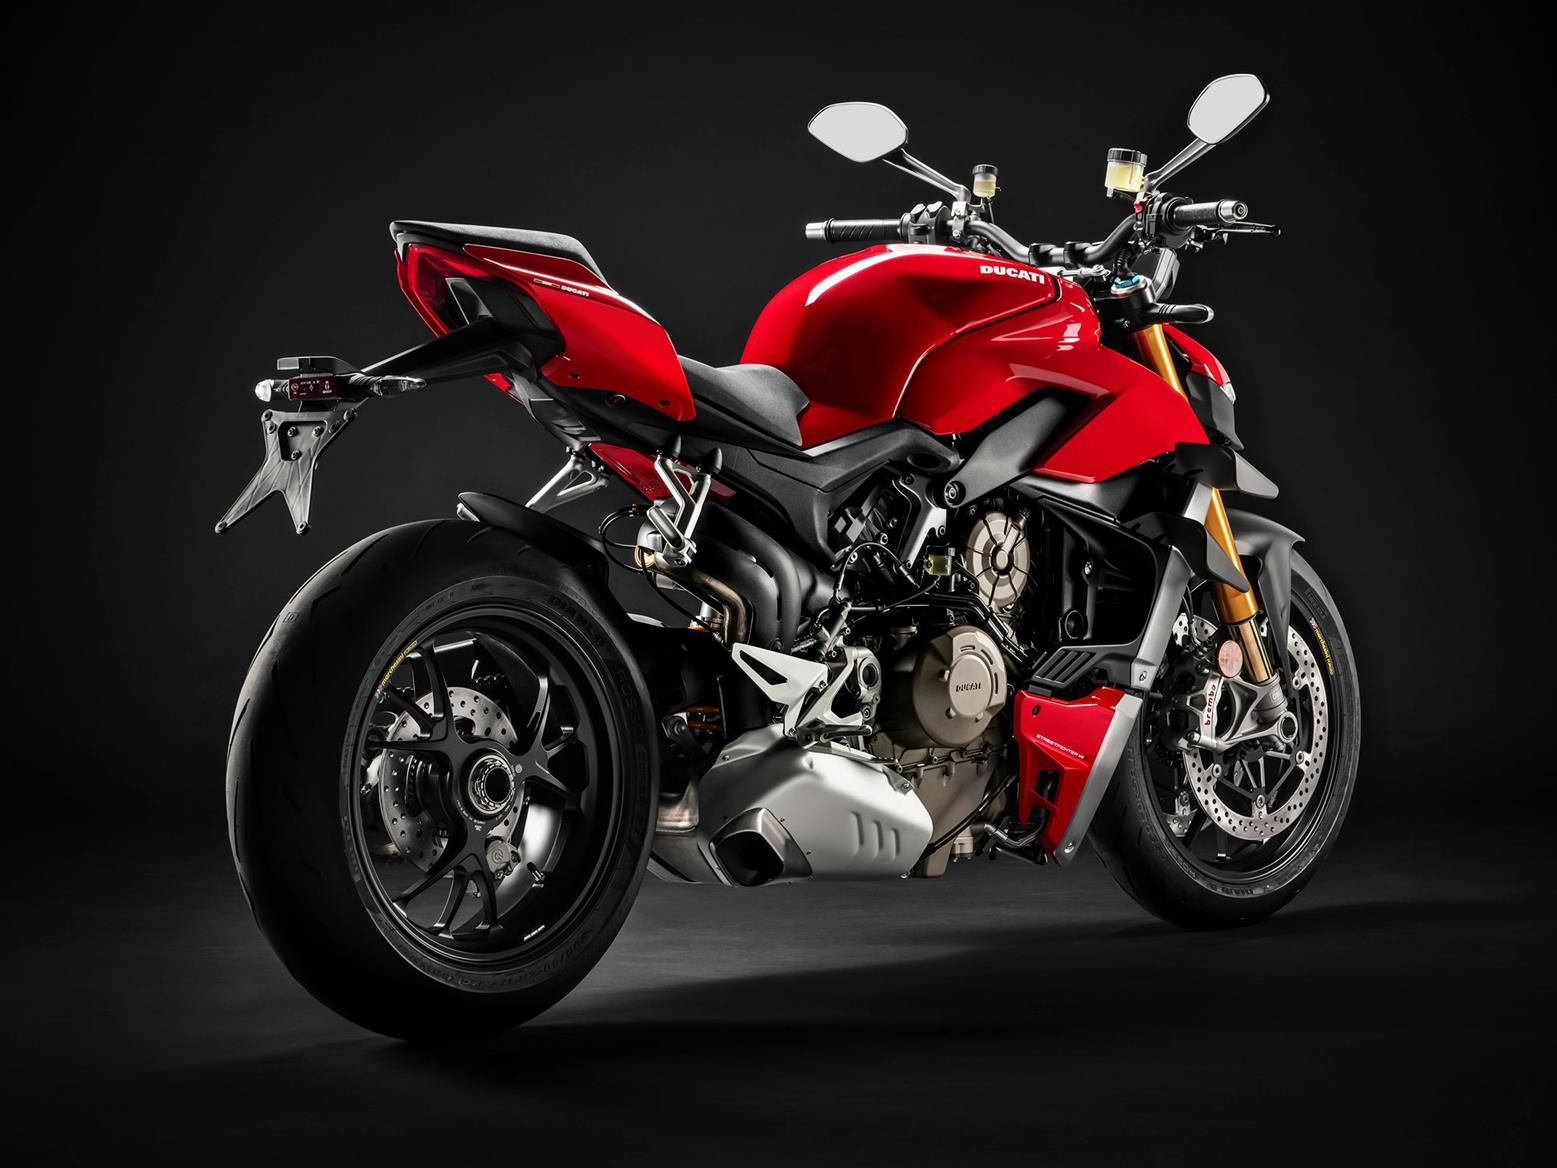 The Ducati Streetfighter V4's rear, including exhaust